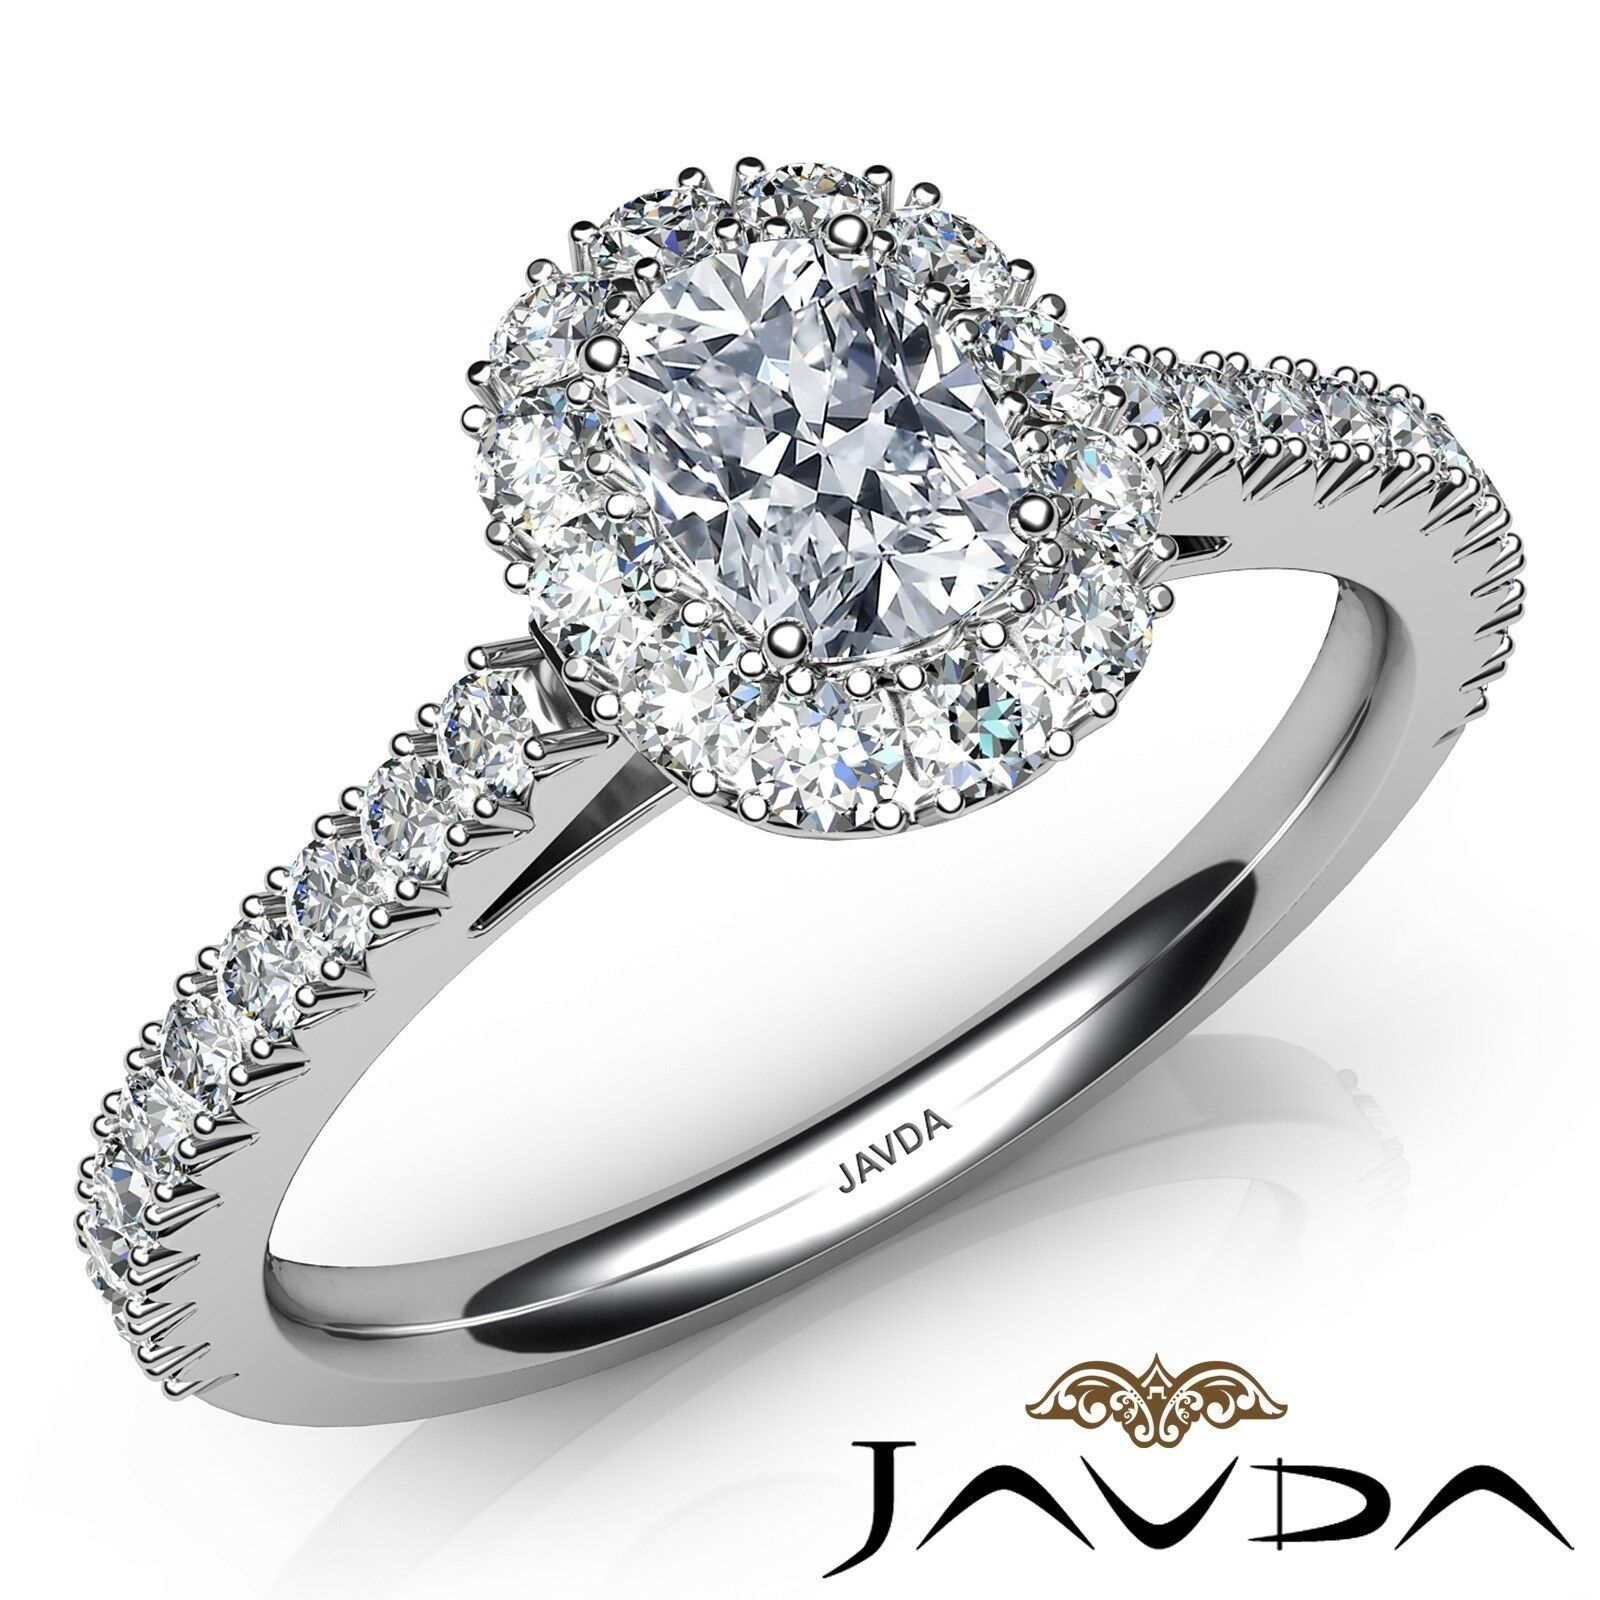 1.5ctw French Pave Set Halo Cushion Diamond Engagement Ring GIA J-VS2 White Gold